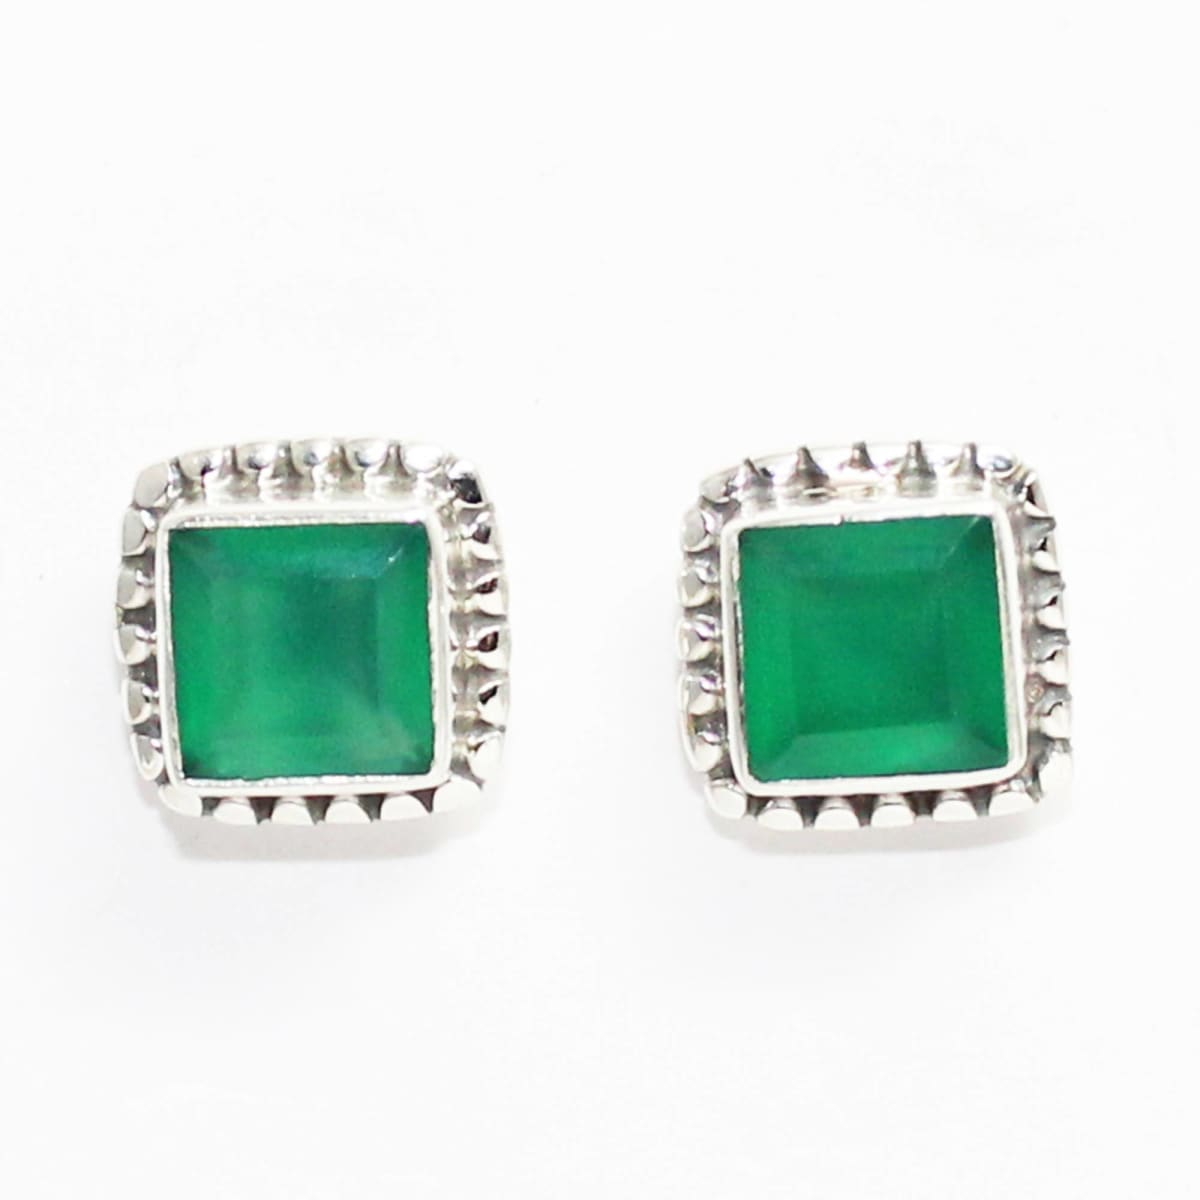 earrings Attractive GREEN ONYX Gemstone Stud Earrings Birthstone 925 Sterling Silver - by Jewelry Zone